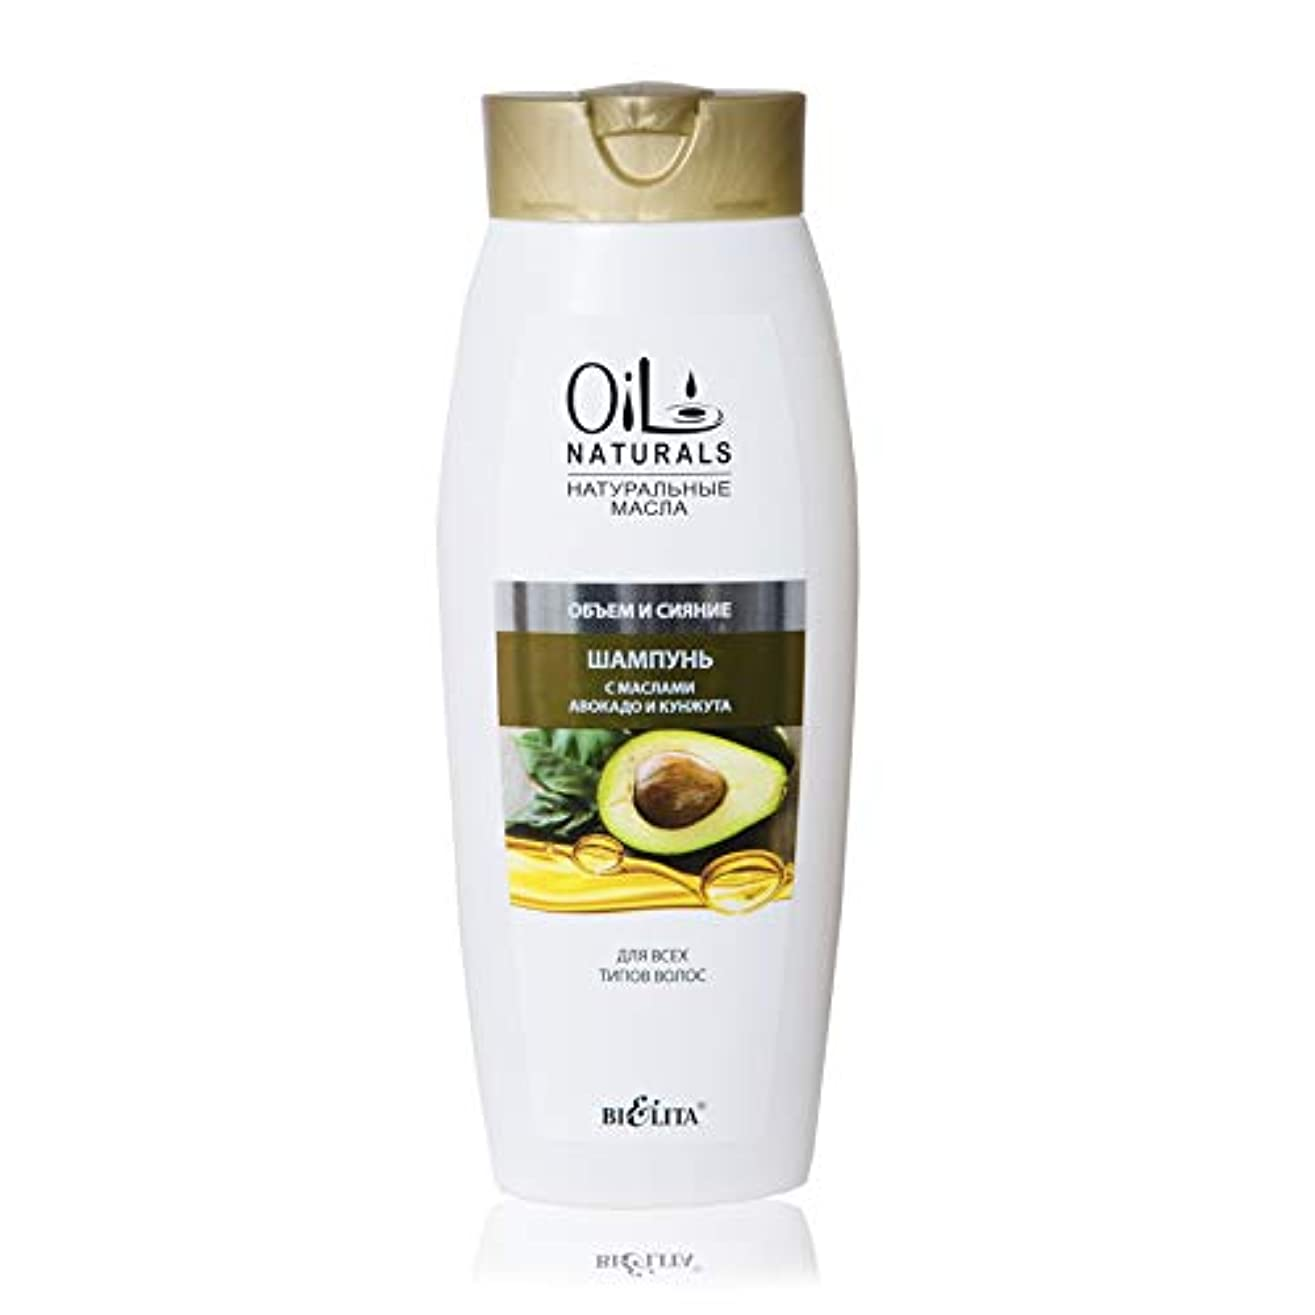 薬を飲む従順怪しいBielita & Vitex Oil Naturals Line | Volume & Shine Oils Shampoo for All Hair Types, 430 ml | Avocado Oil, Silk...